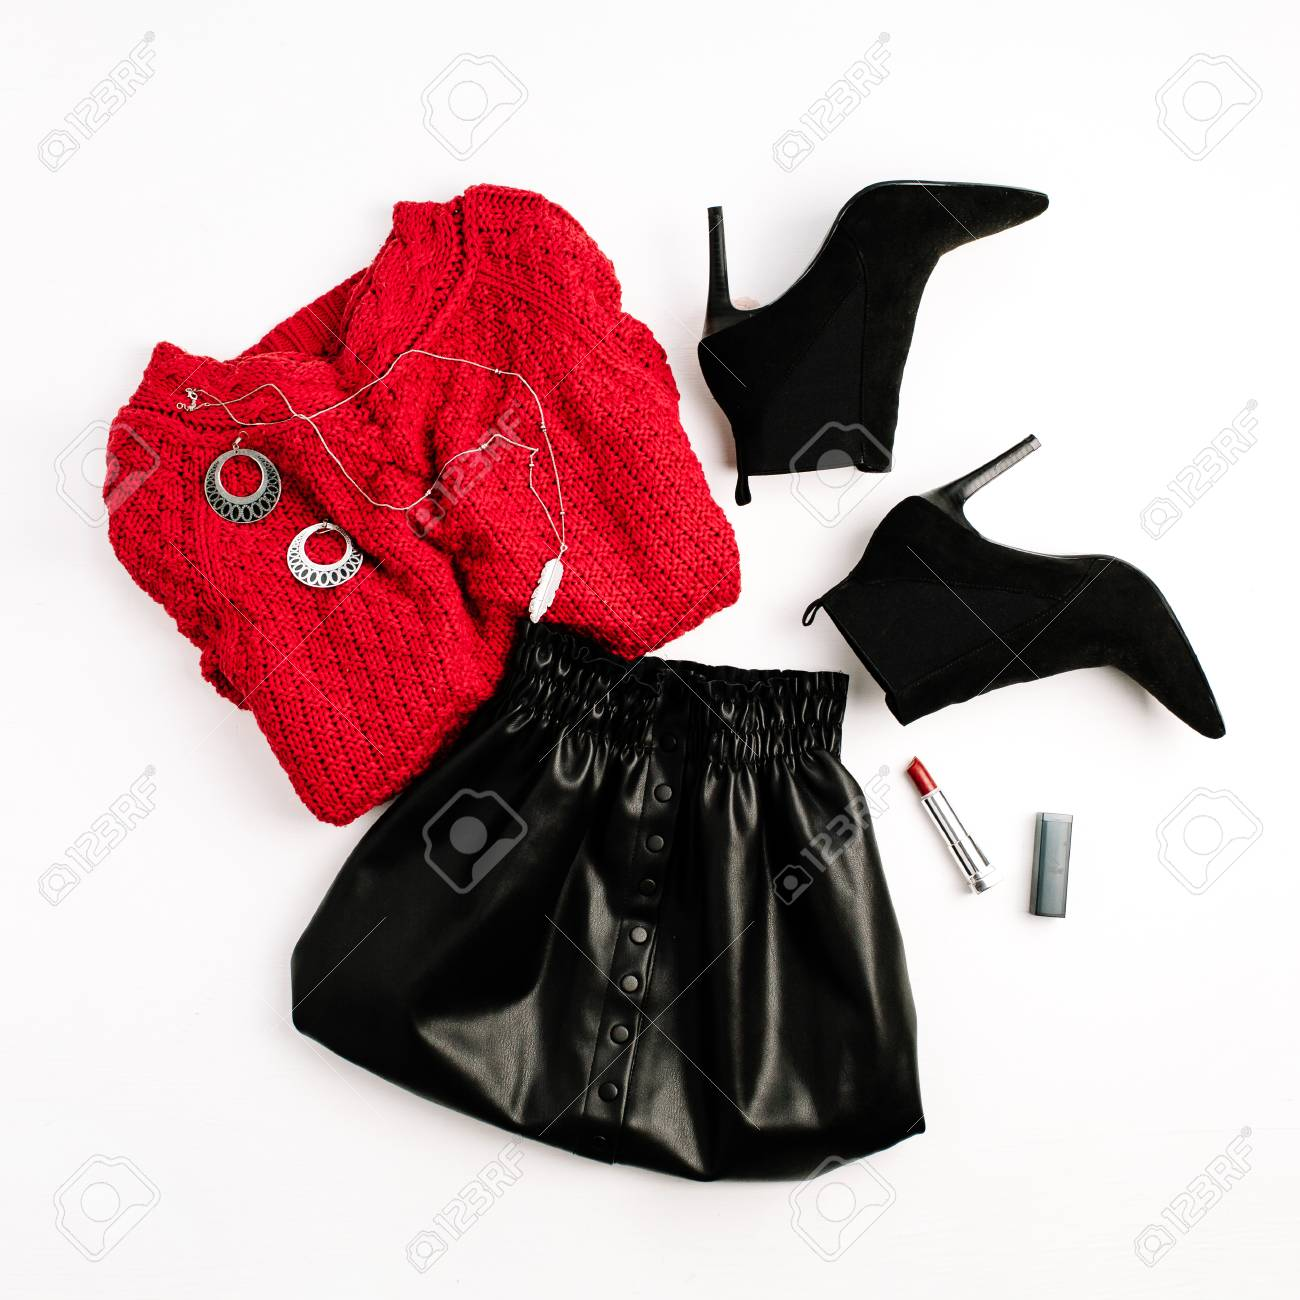 d8d6466be8 Female fashion clothes. Red sweater, black skirt, shoes and lipstick. Flat  lay